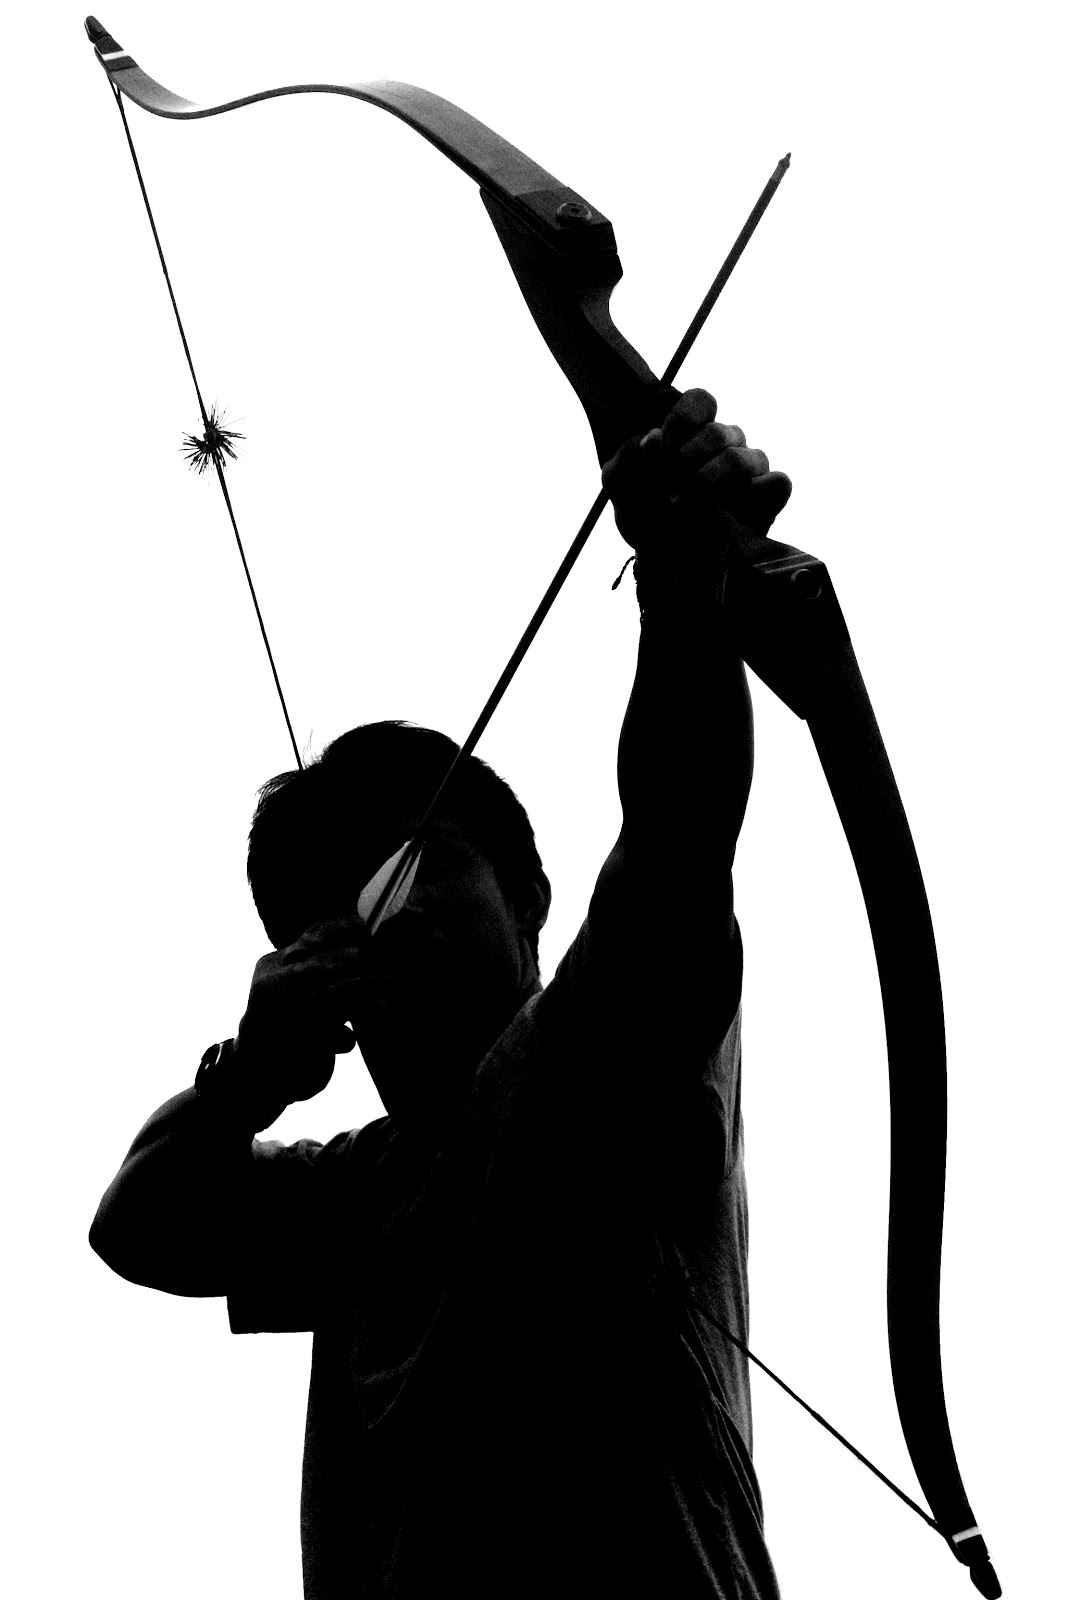 Free Archery Clipart Black And White, Download Free Clip Art.